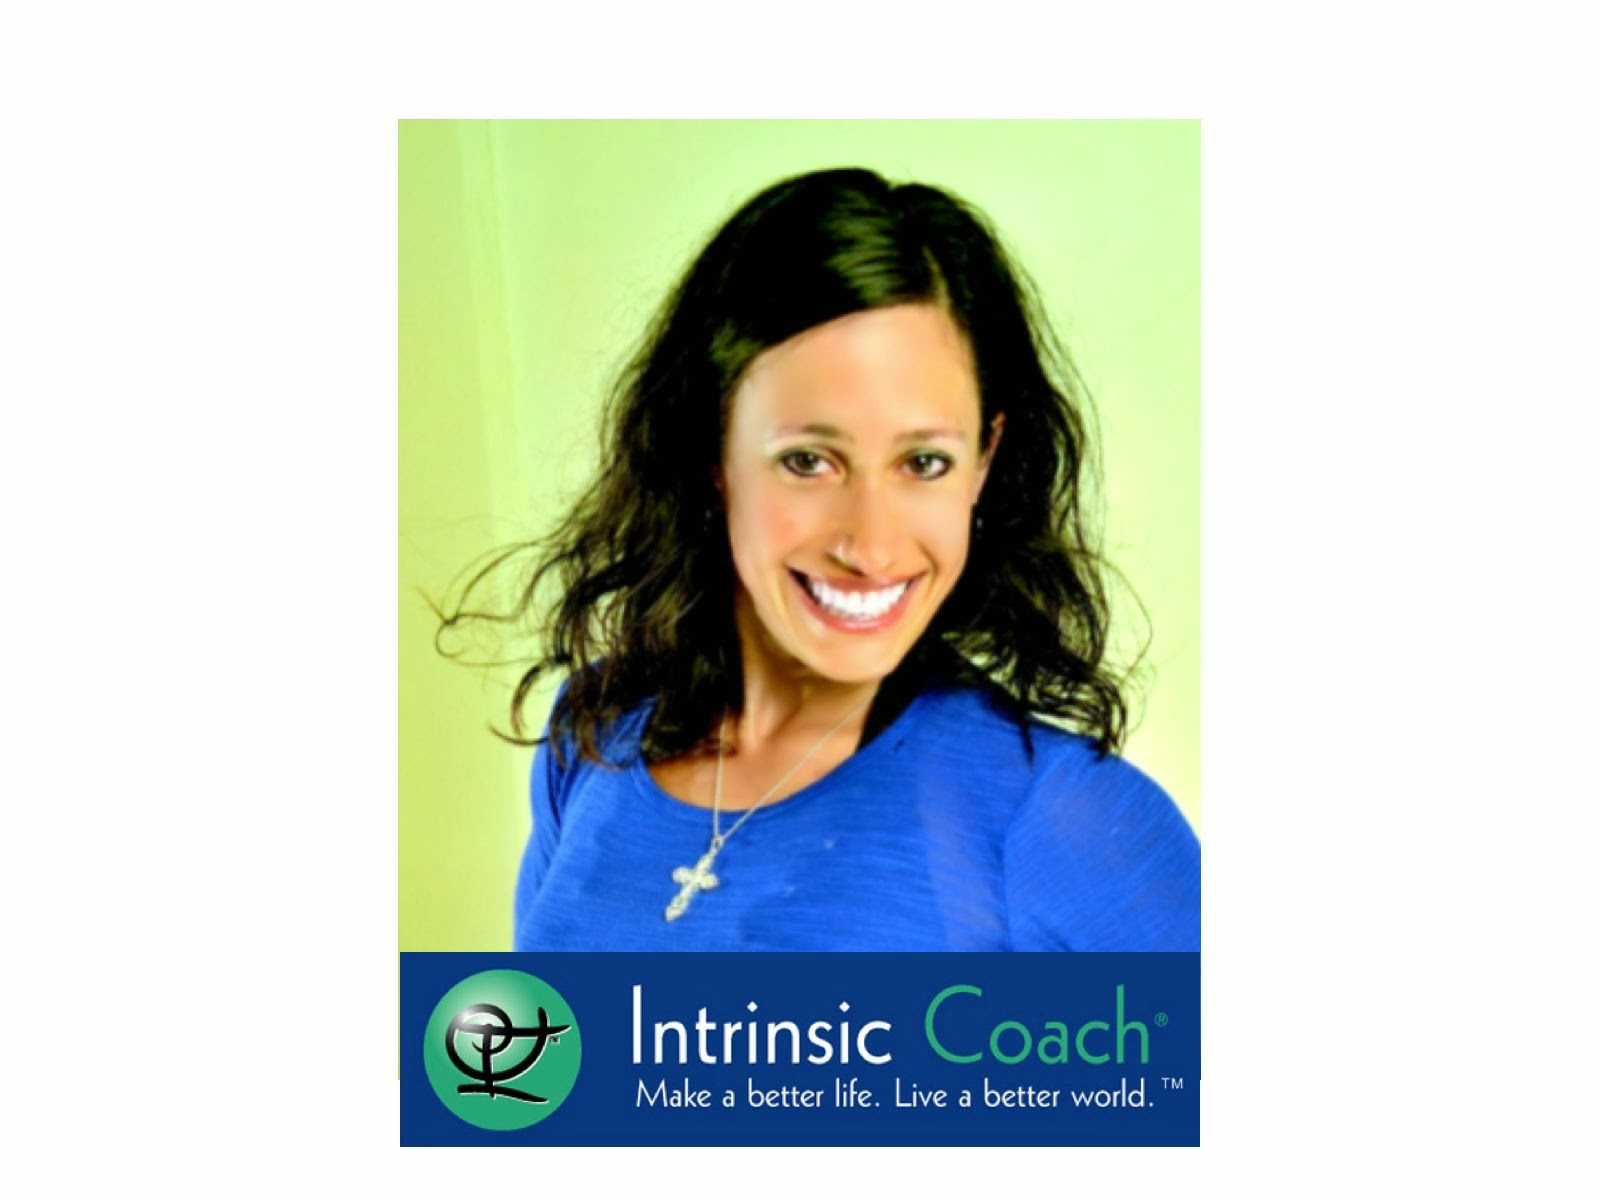 Intrinsic Coach